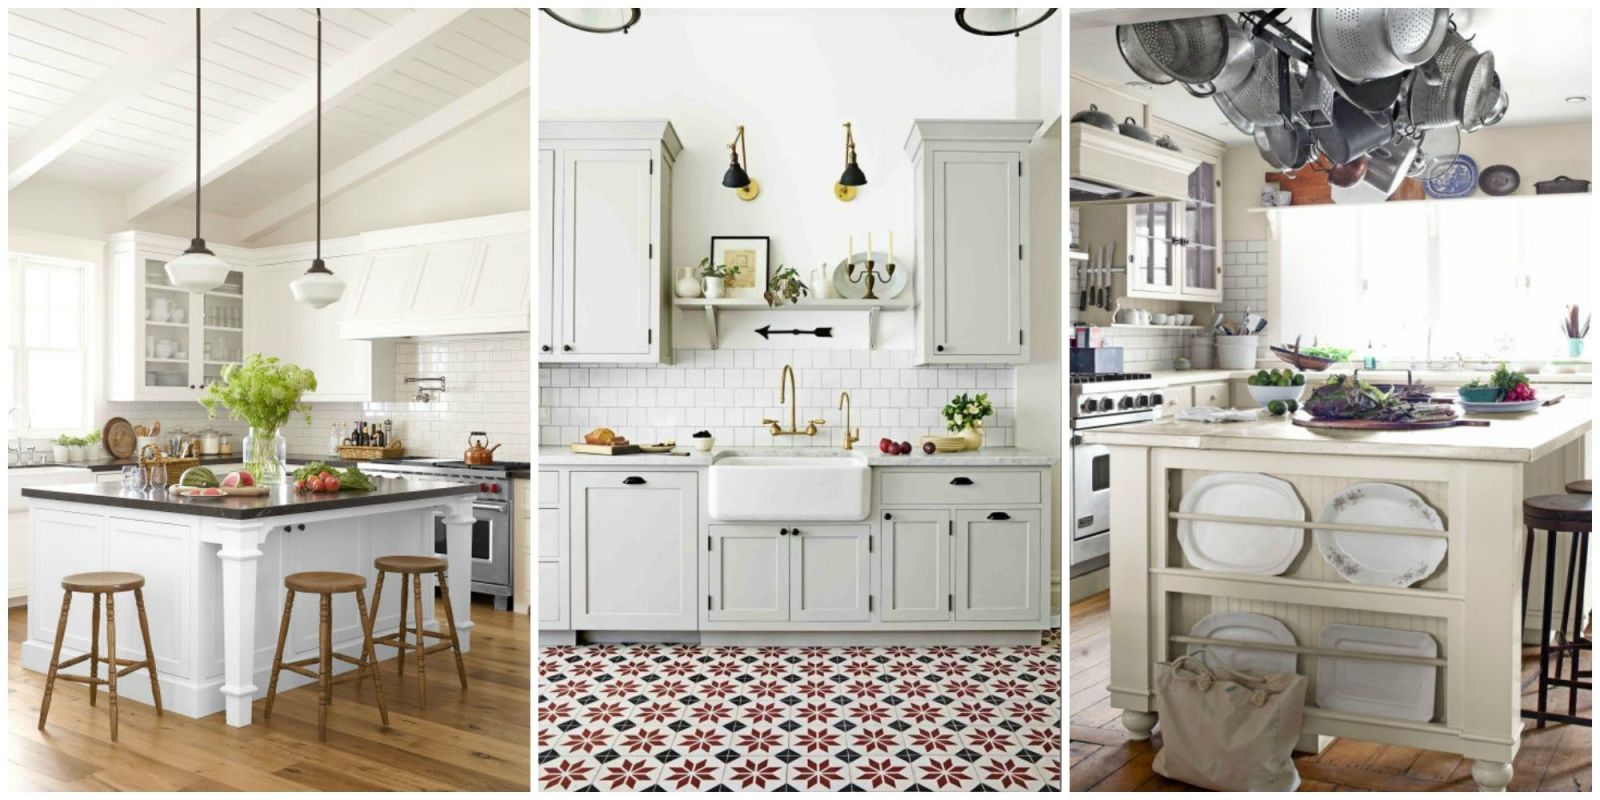 10 Best White Kitchen Cabinet Paint Colors   Ideas For Kitchen With White  Cabinets